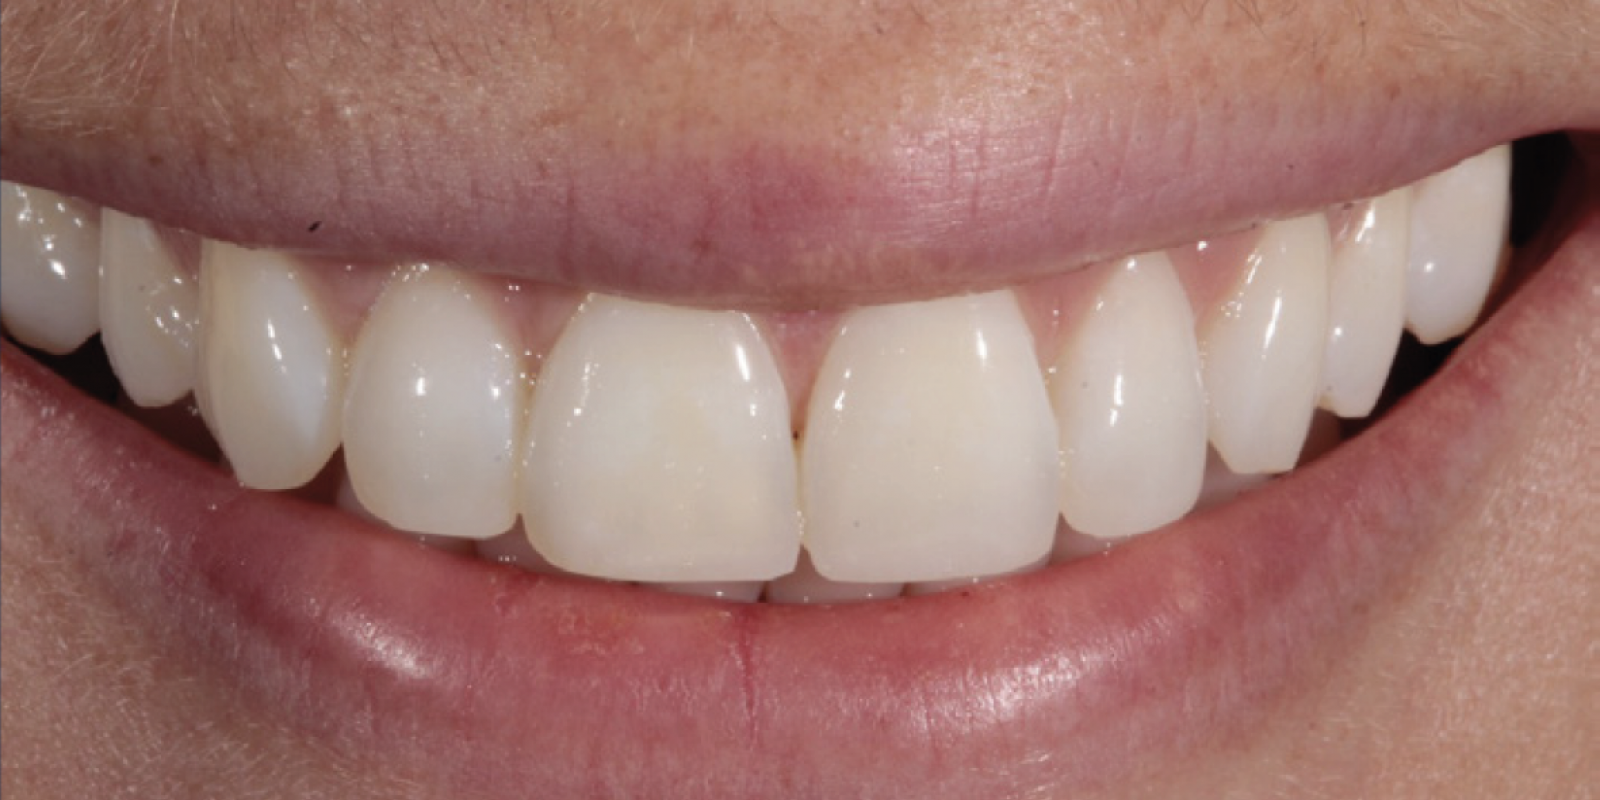 Tif Qureshi - Ortho restorative - case 1.2